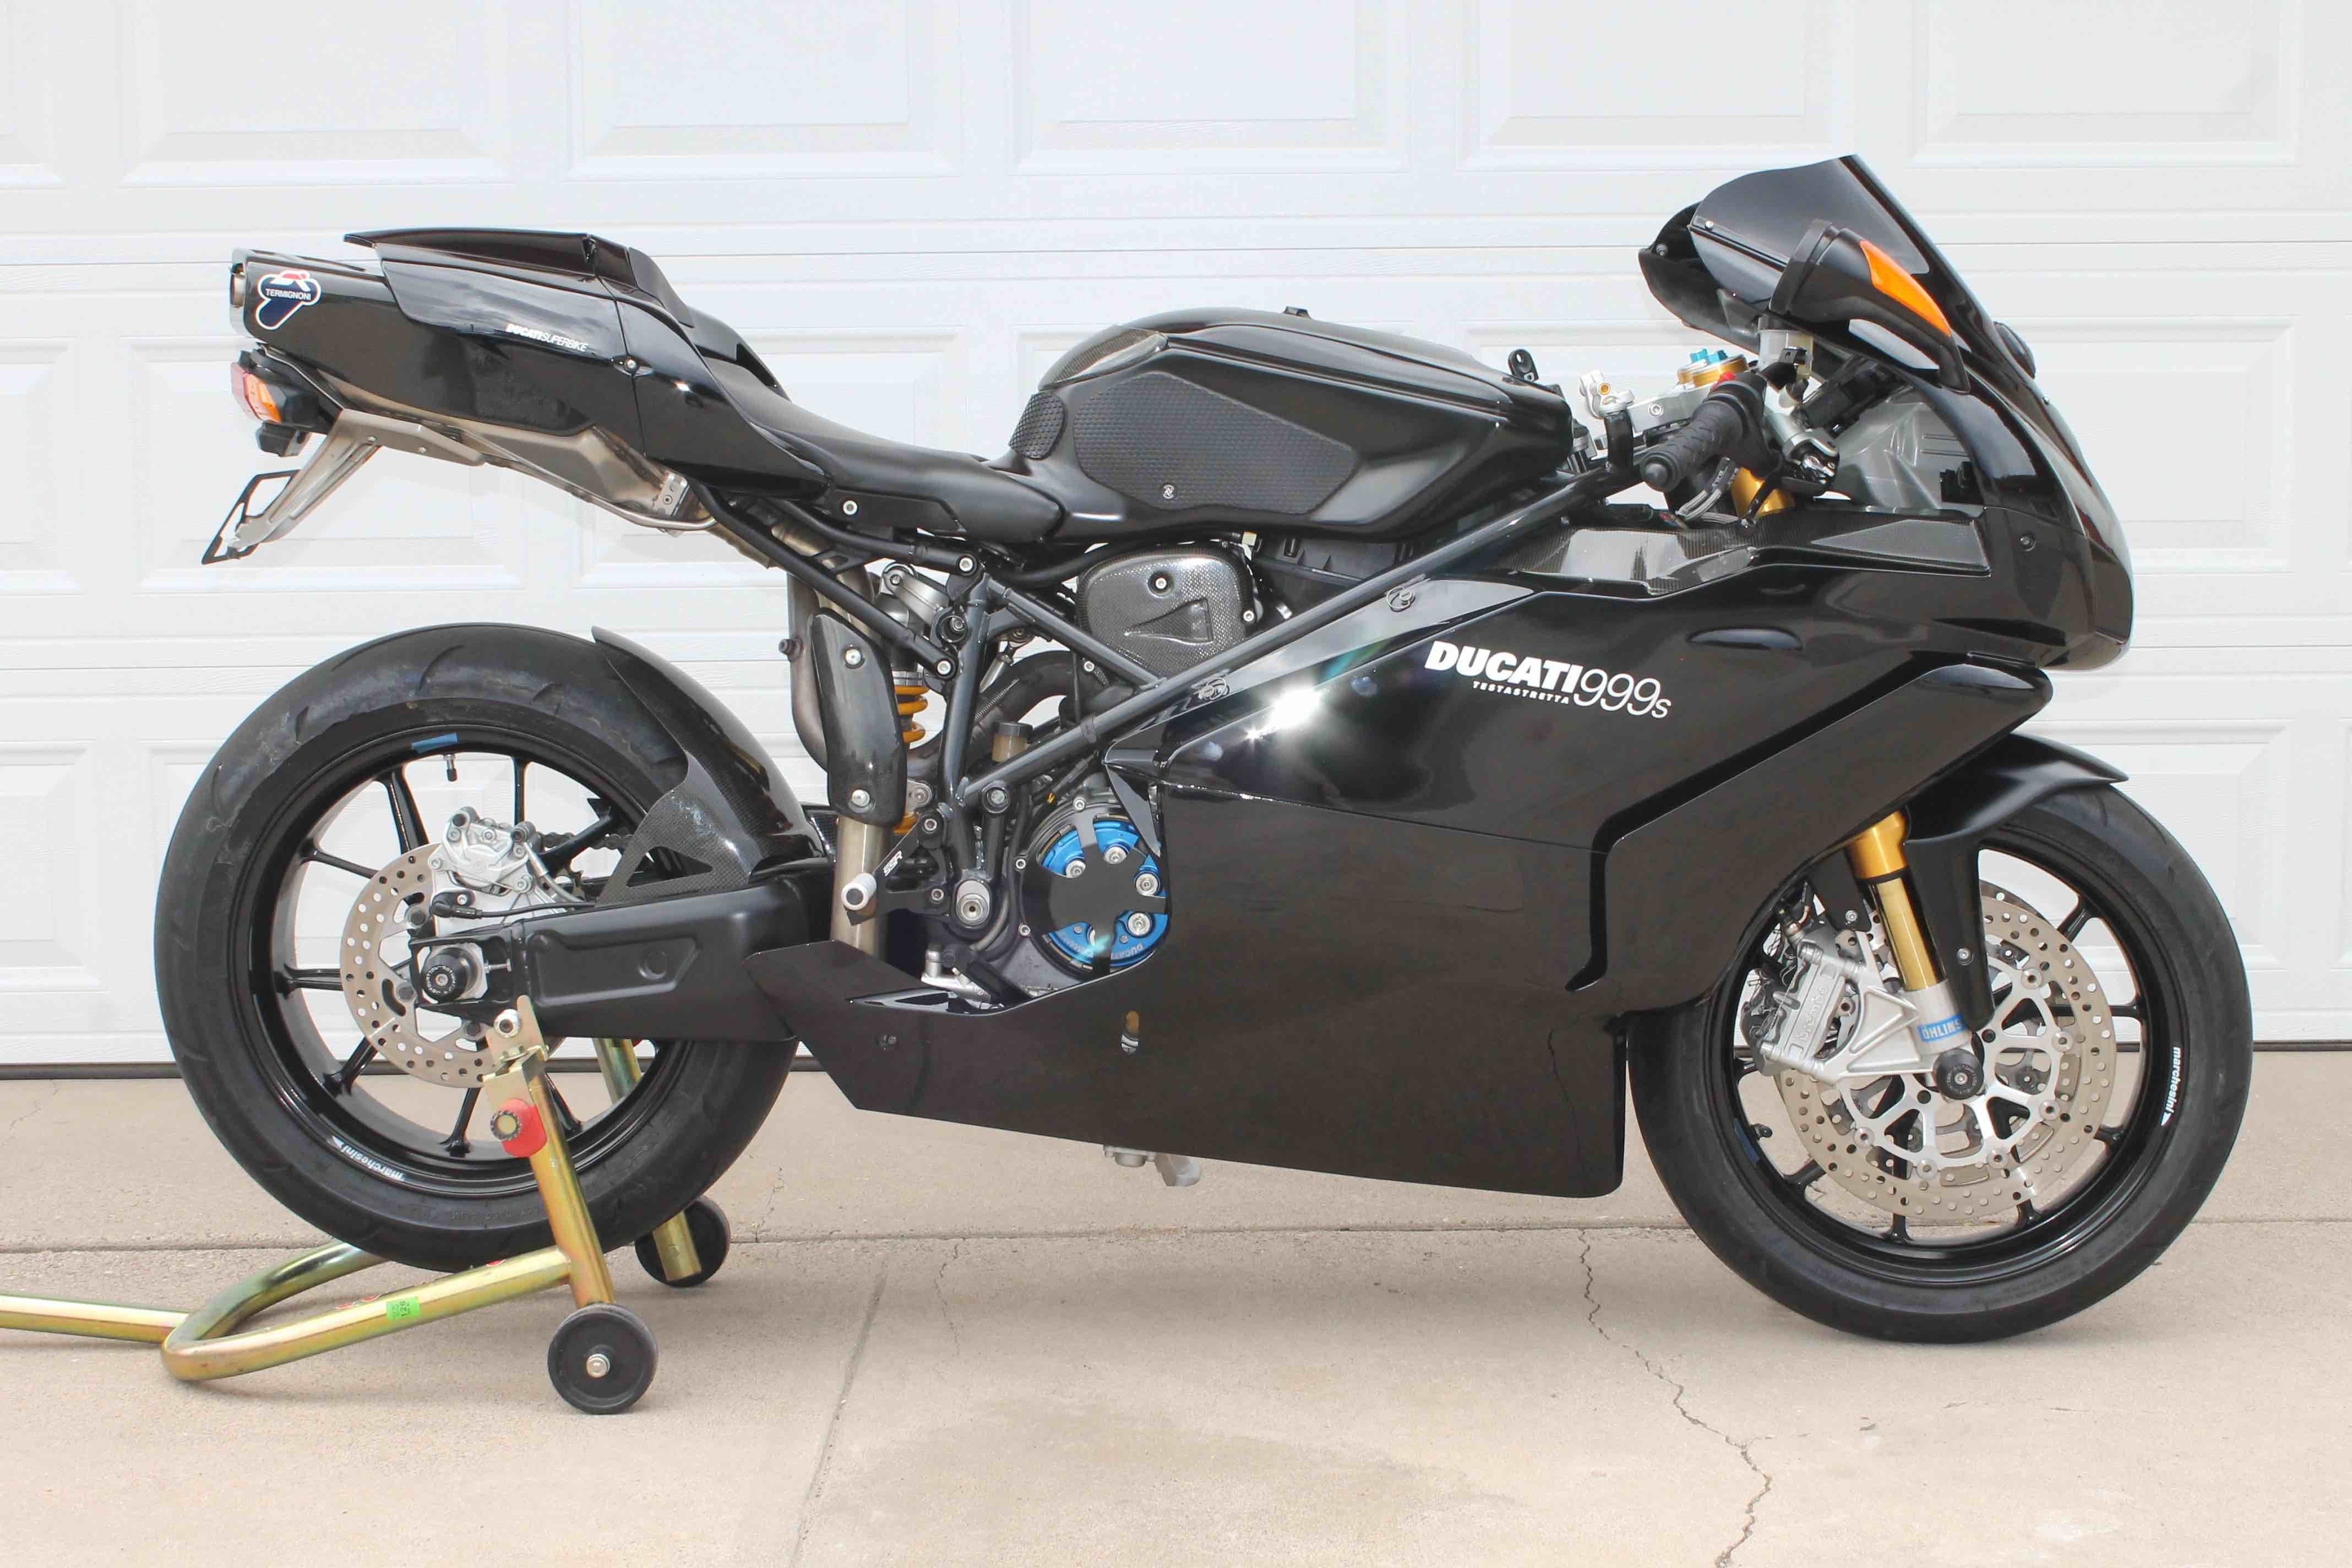 2005 Ducati Superbike 999S, motorcycle listing